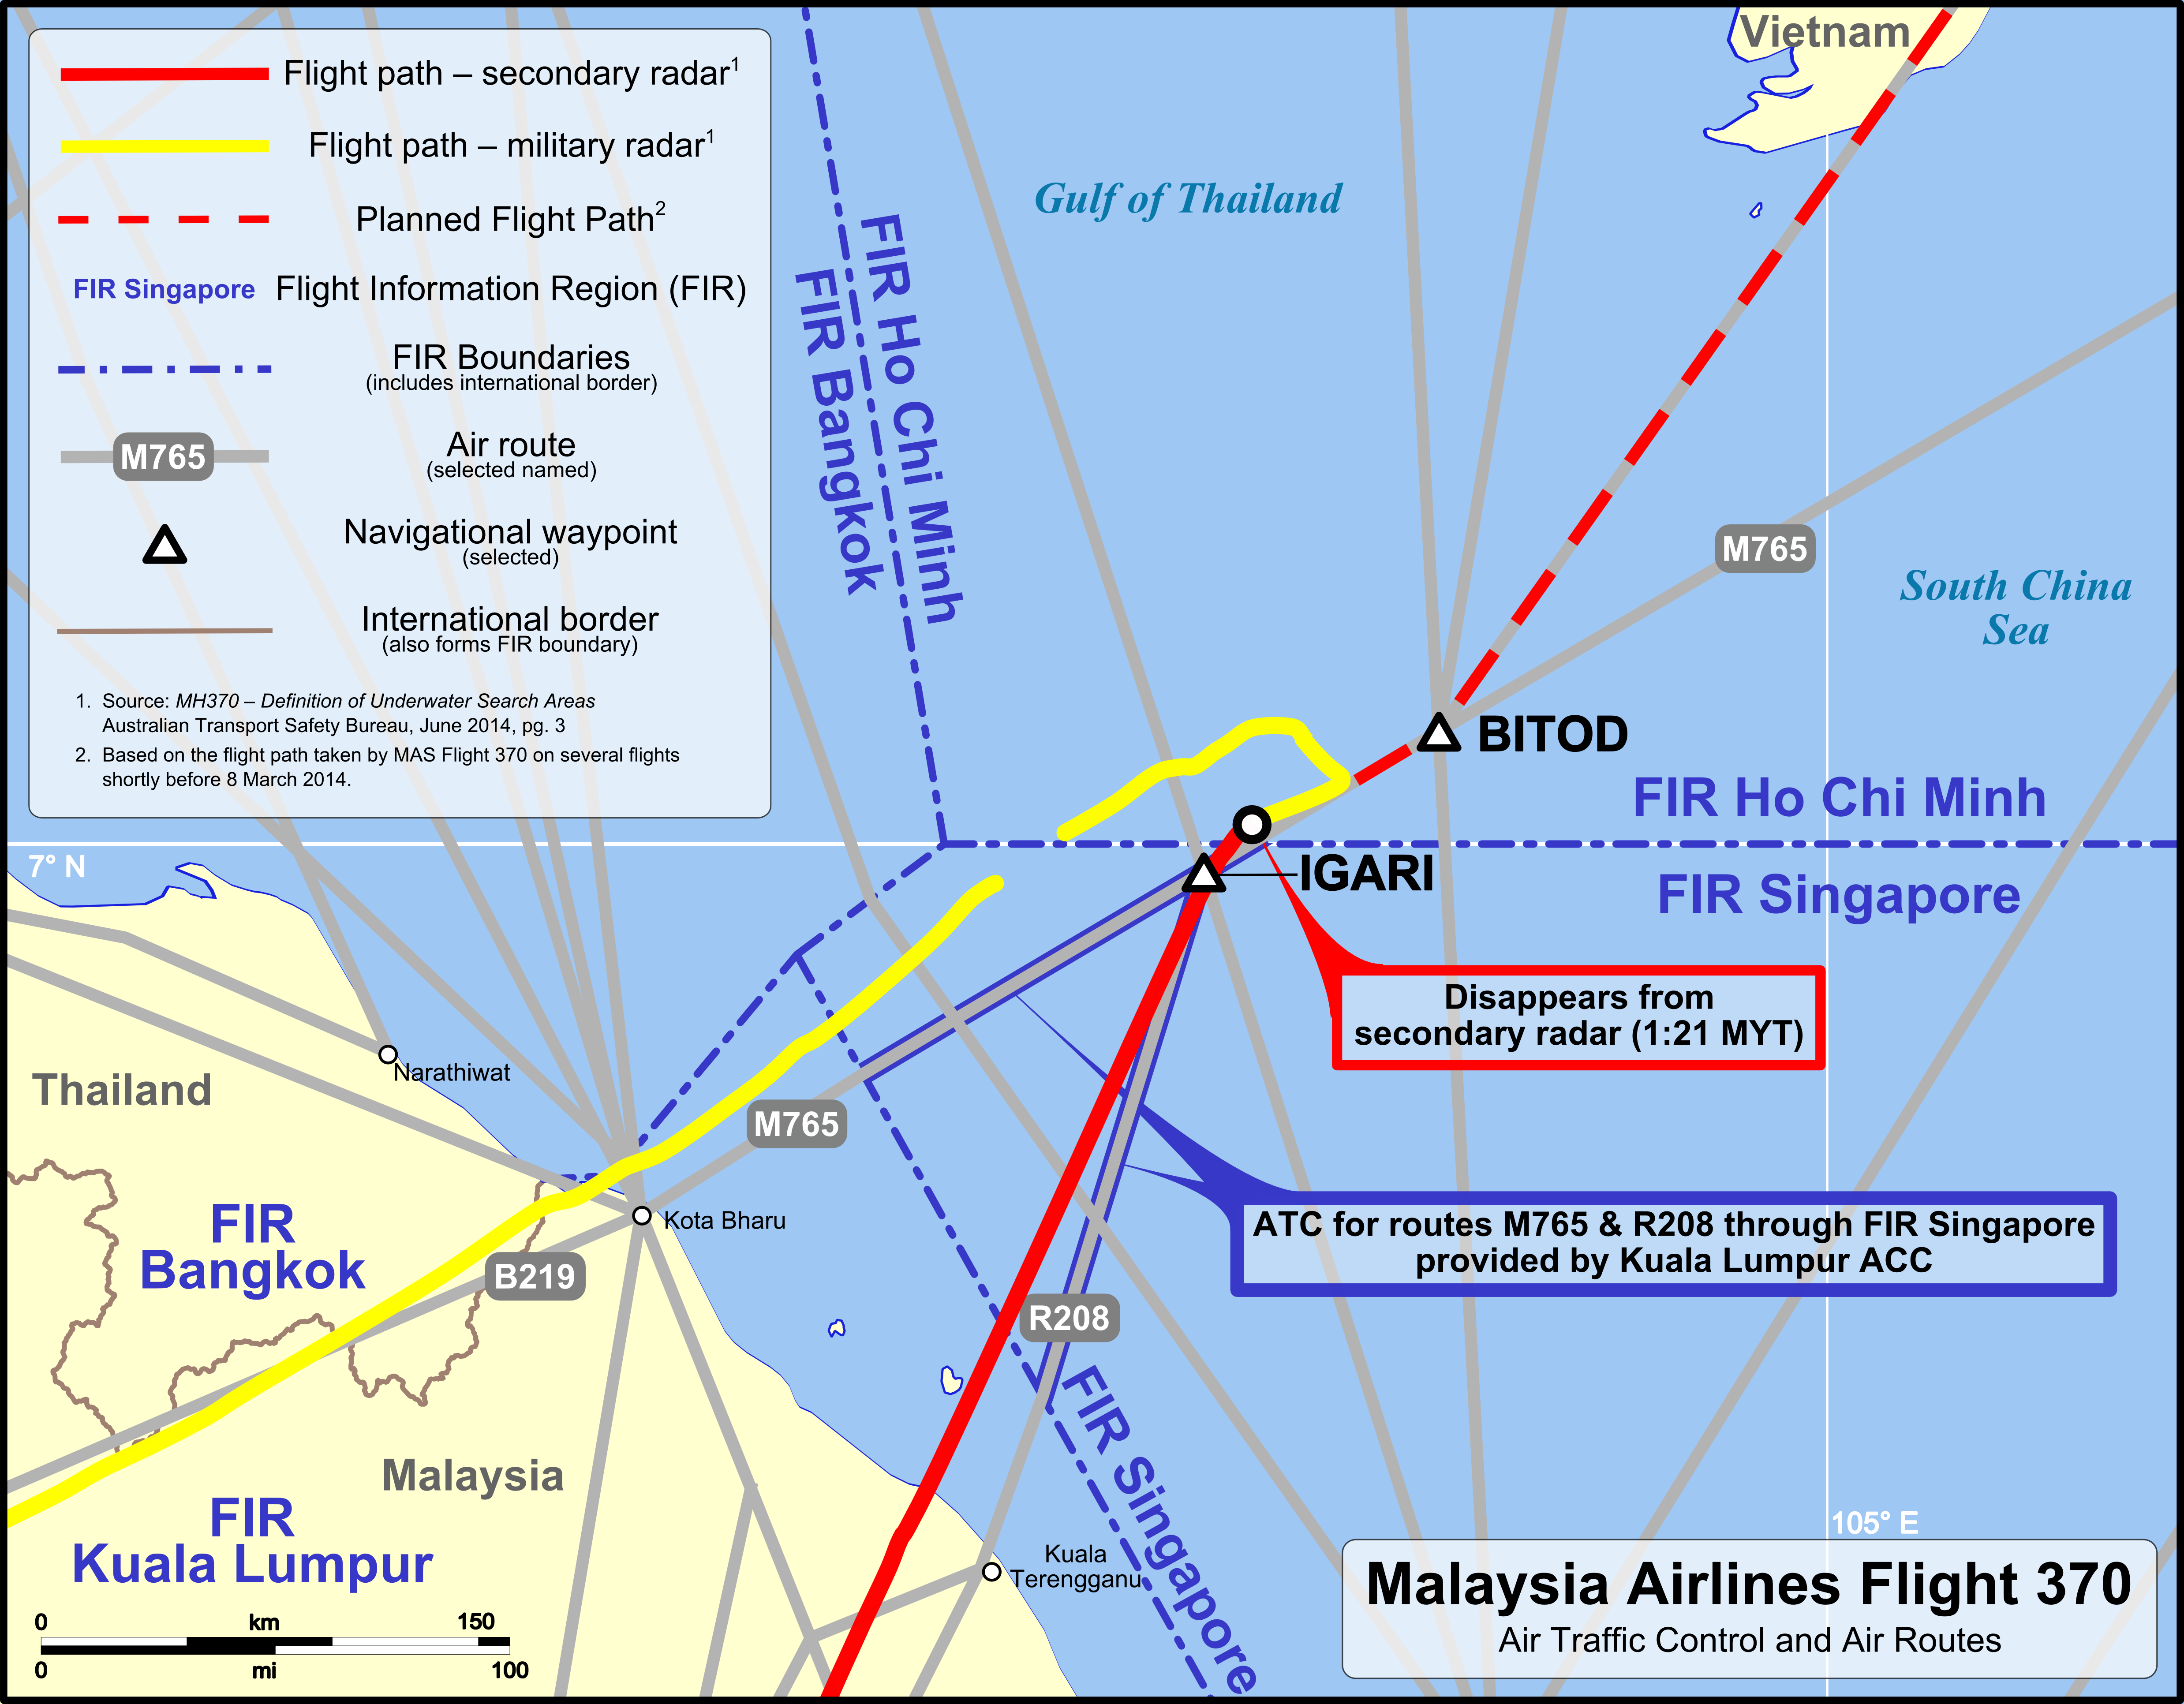 Debris Found Two Months Ago Almost Certainly From MH370 MH370 ATC and air routes map